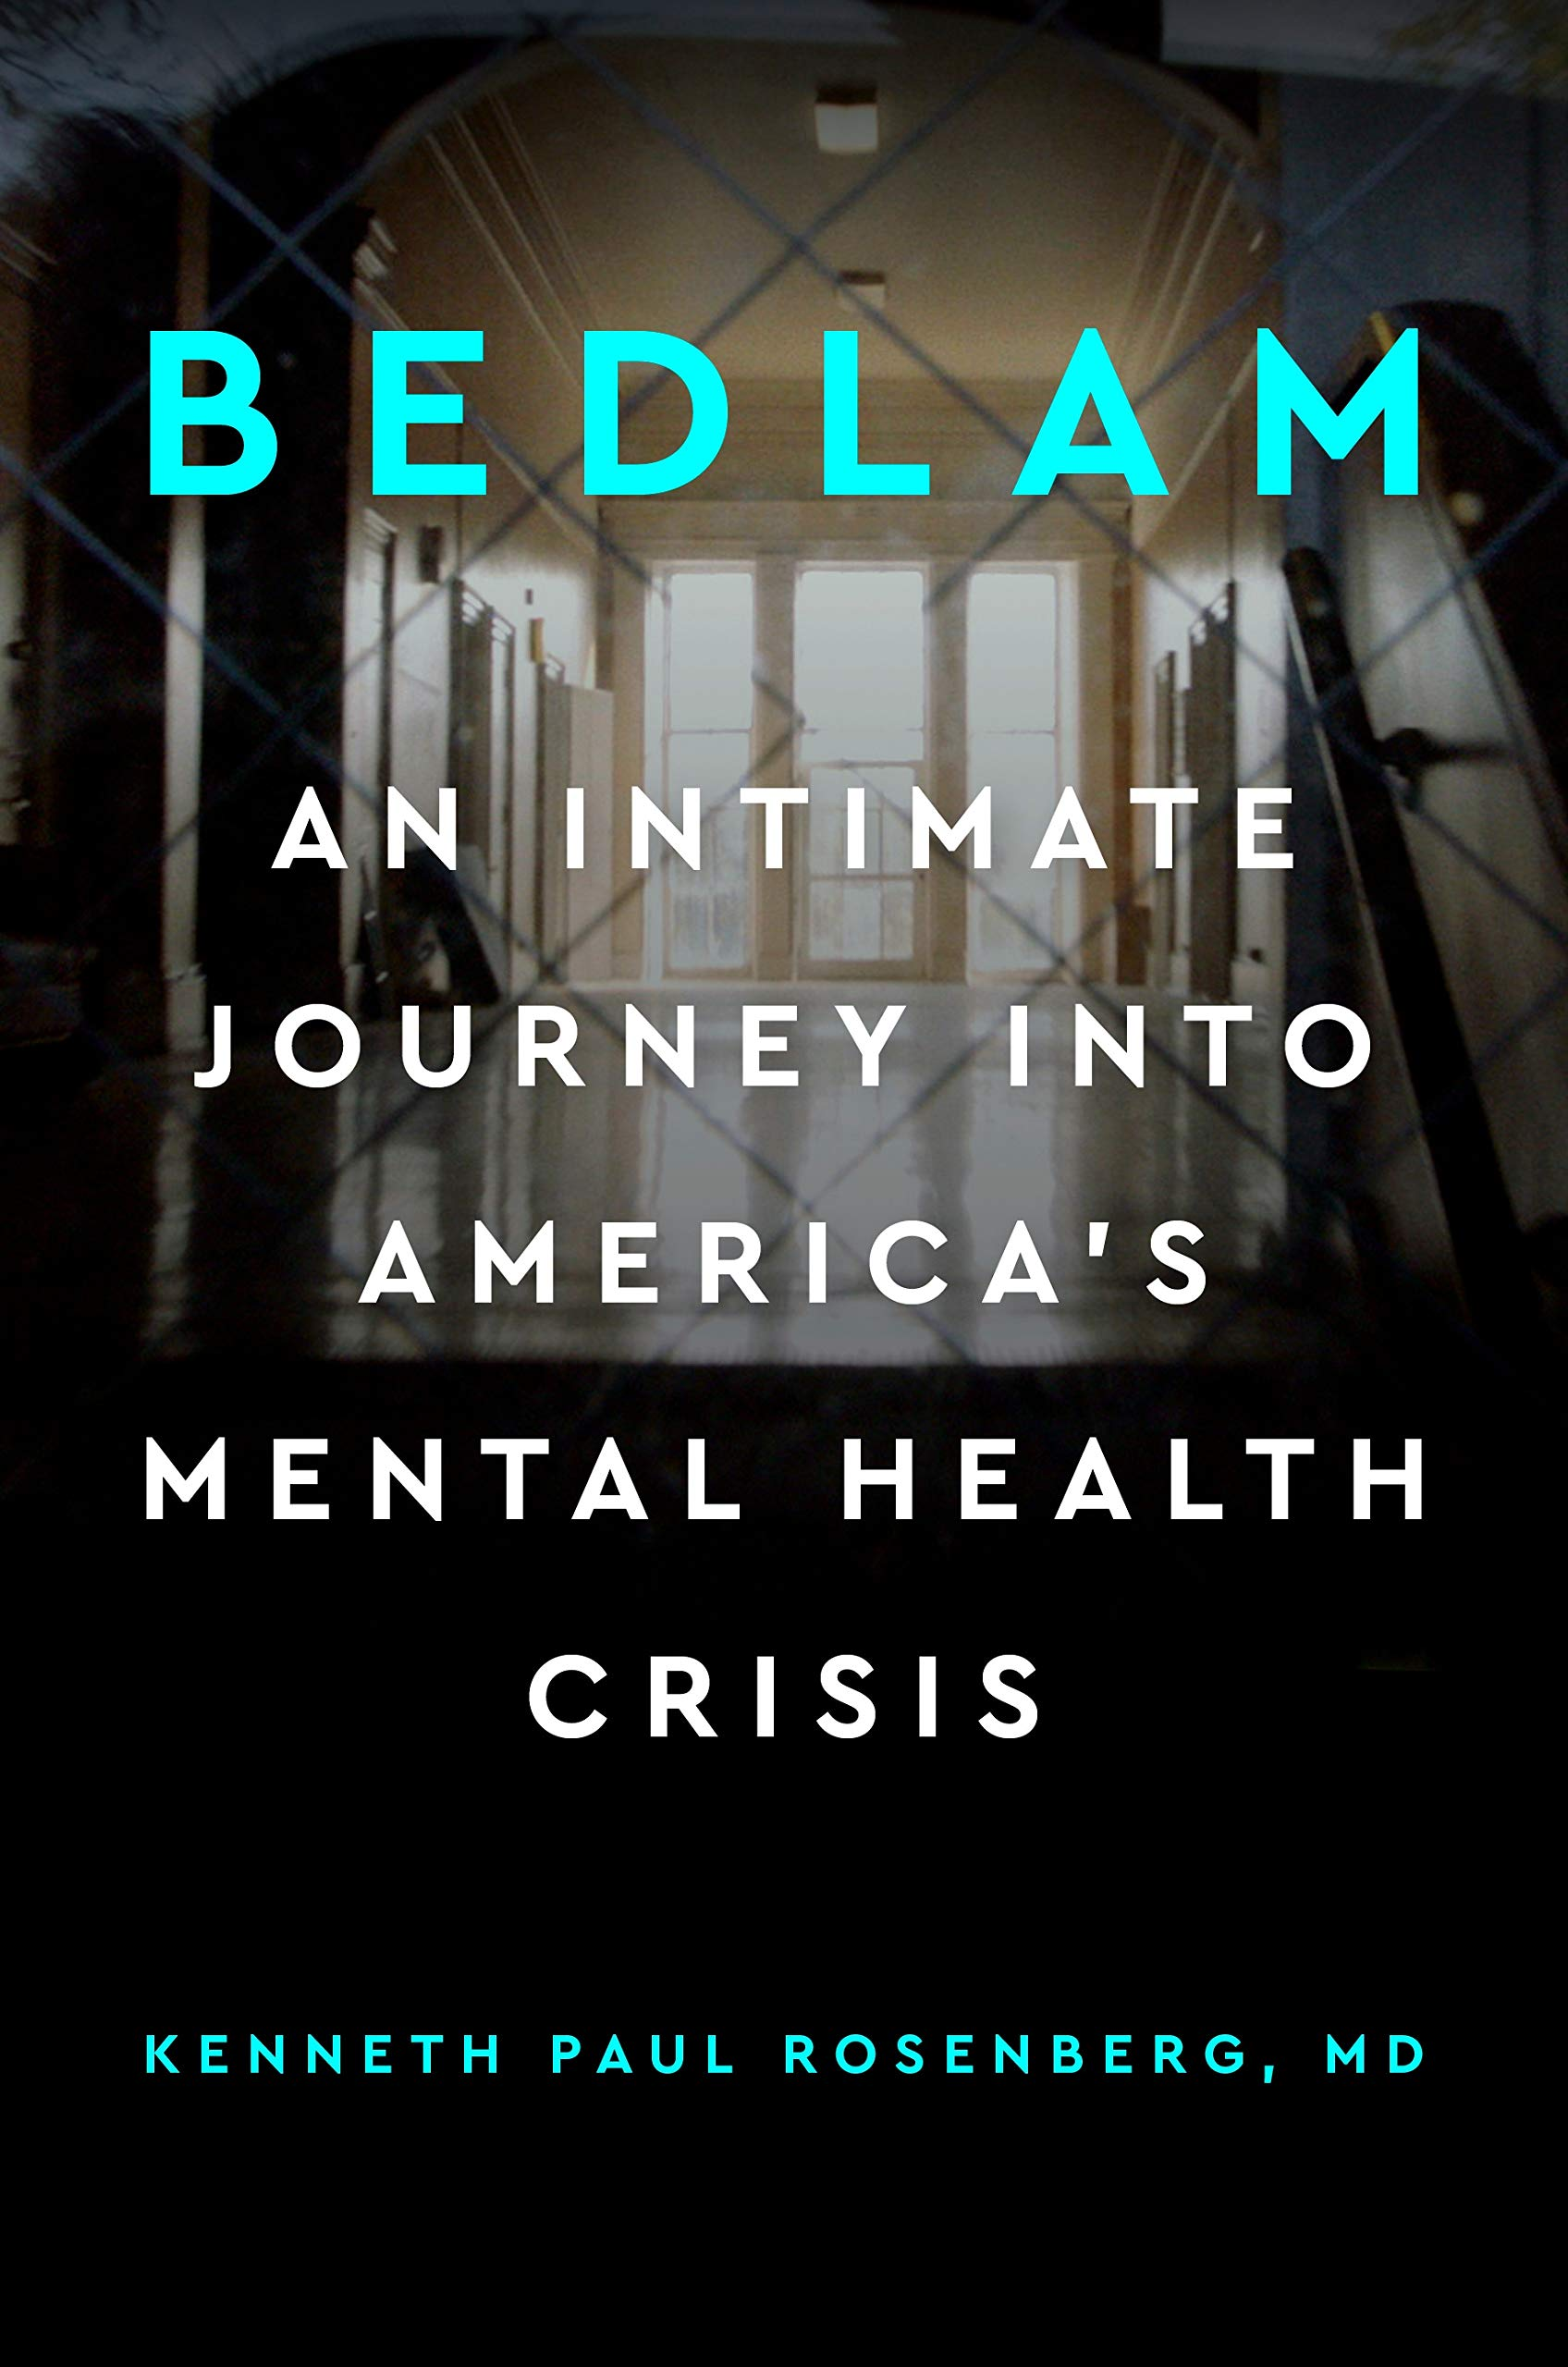 Bedlam: An Intimate Journey Into America's Mental Health Crisis by Avery